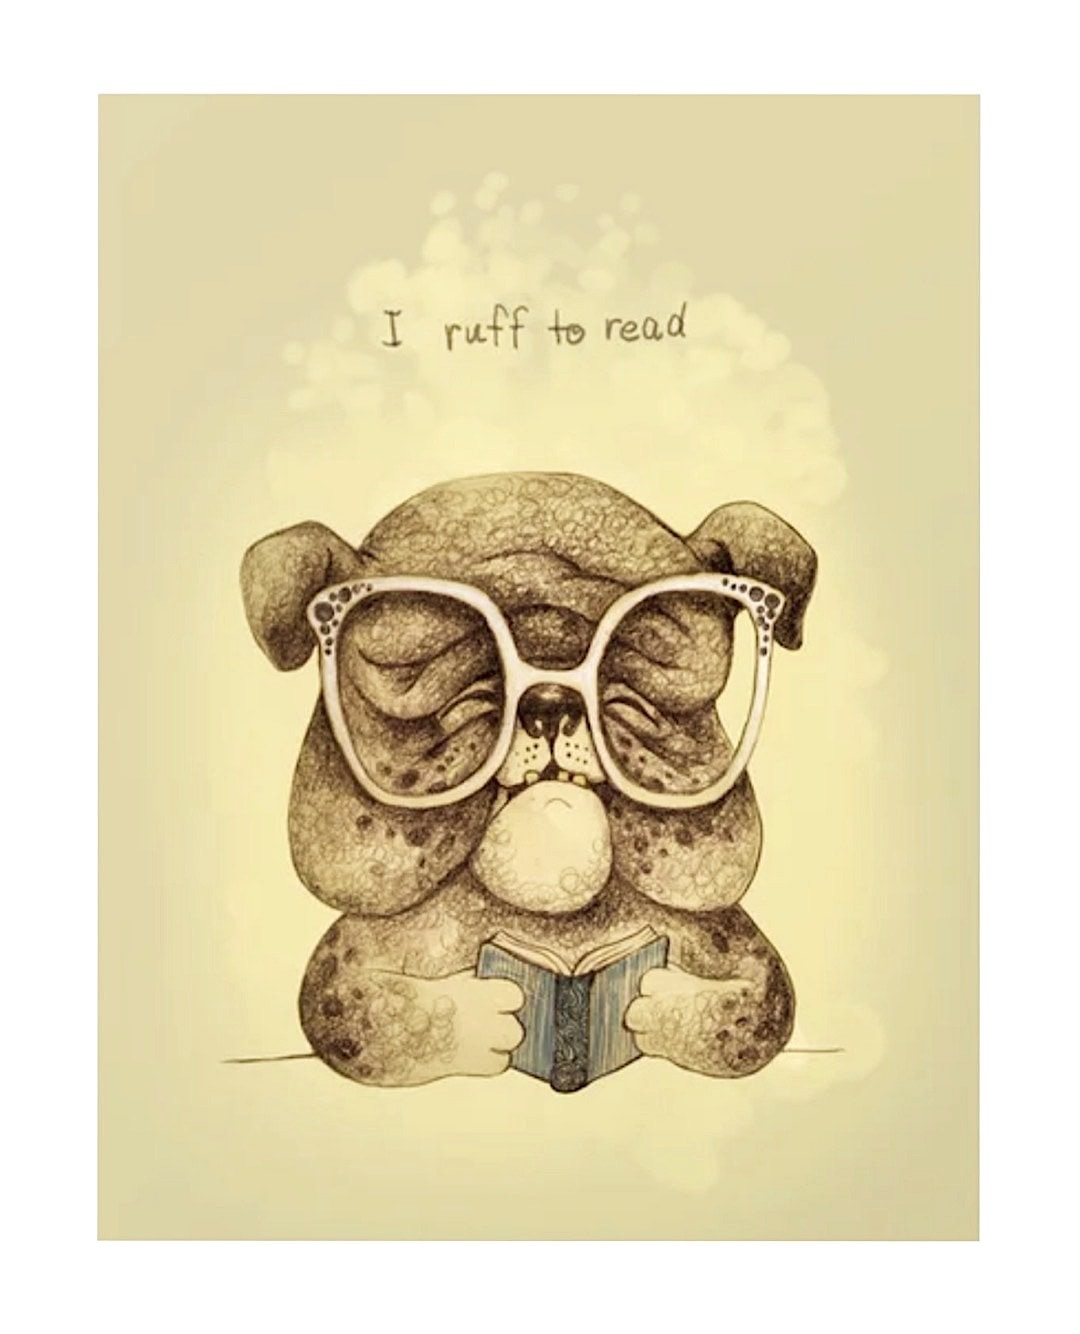 I ruff to read poster by Ma. Luisa Gonzaga - best read posters